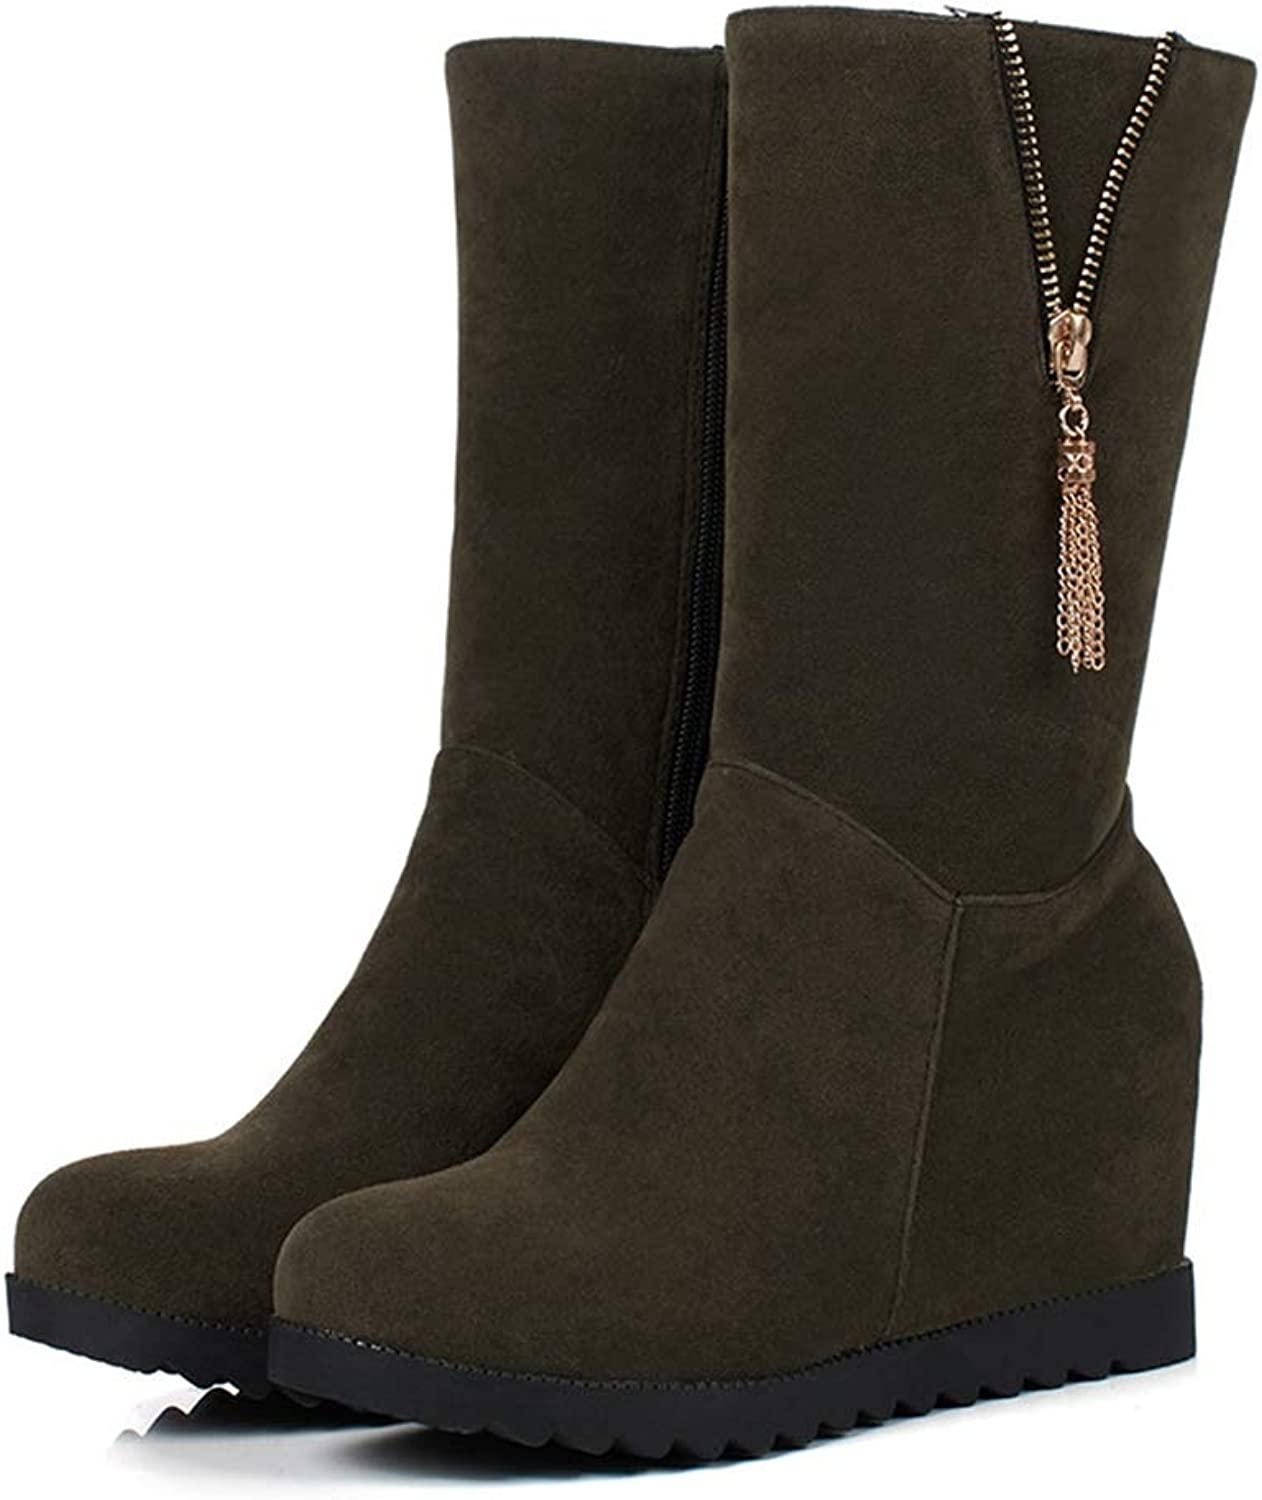 Female Soft Fashion Winter Snow shoes Platform Round Toe Mid Calf Boots for Women Height Increasing Zipper Half Boots